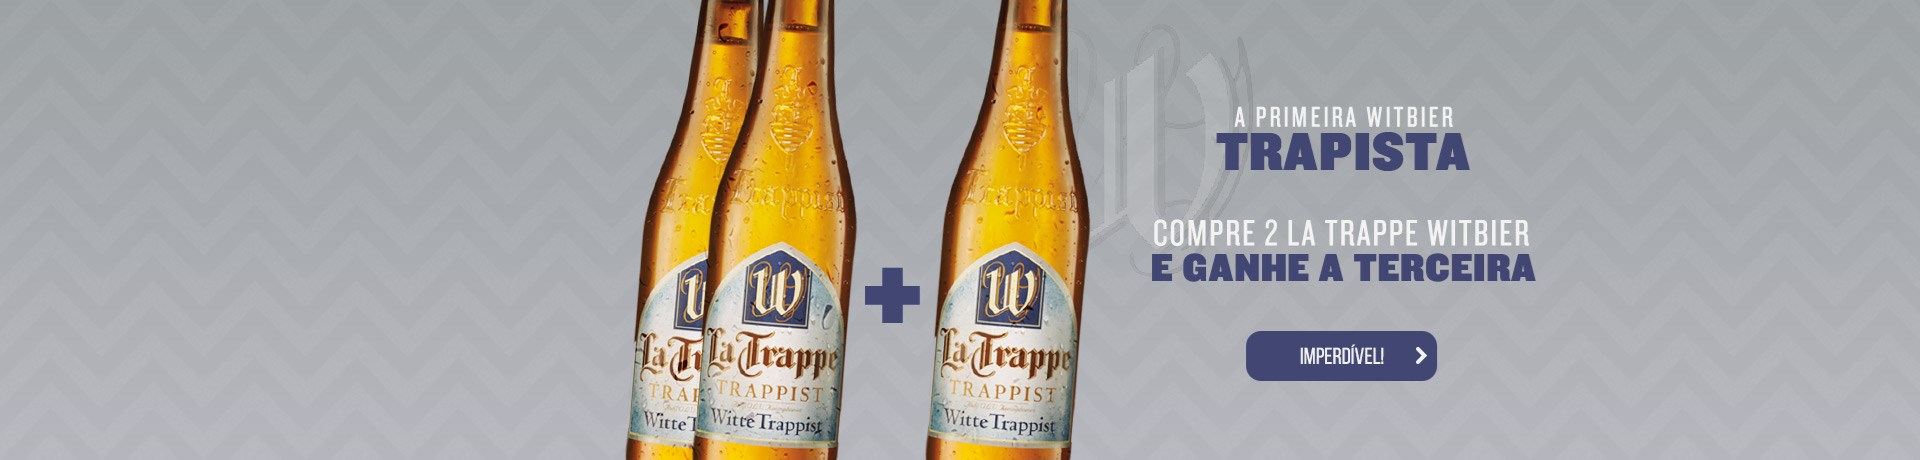 La Trappe - Home Desktop